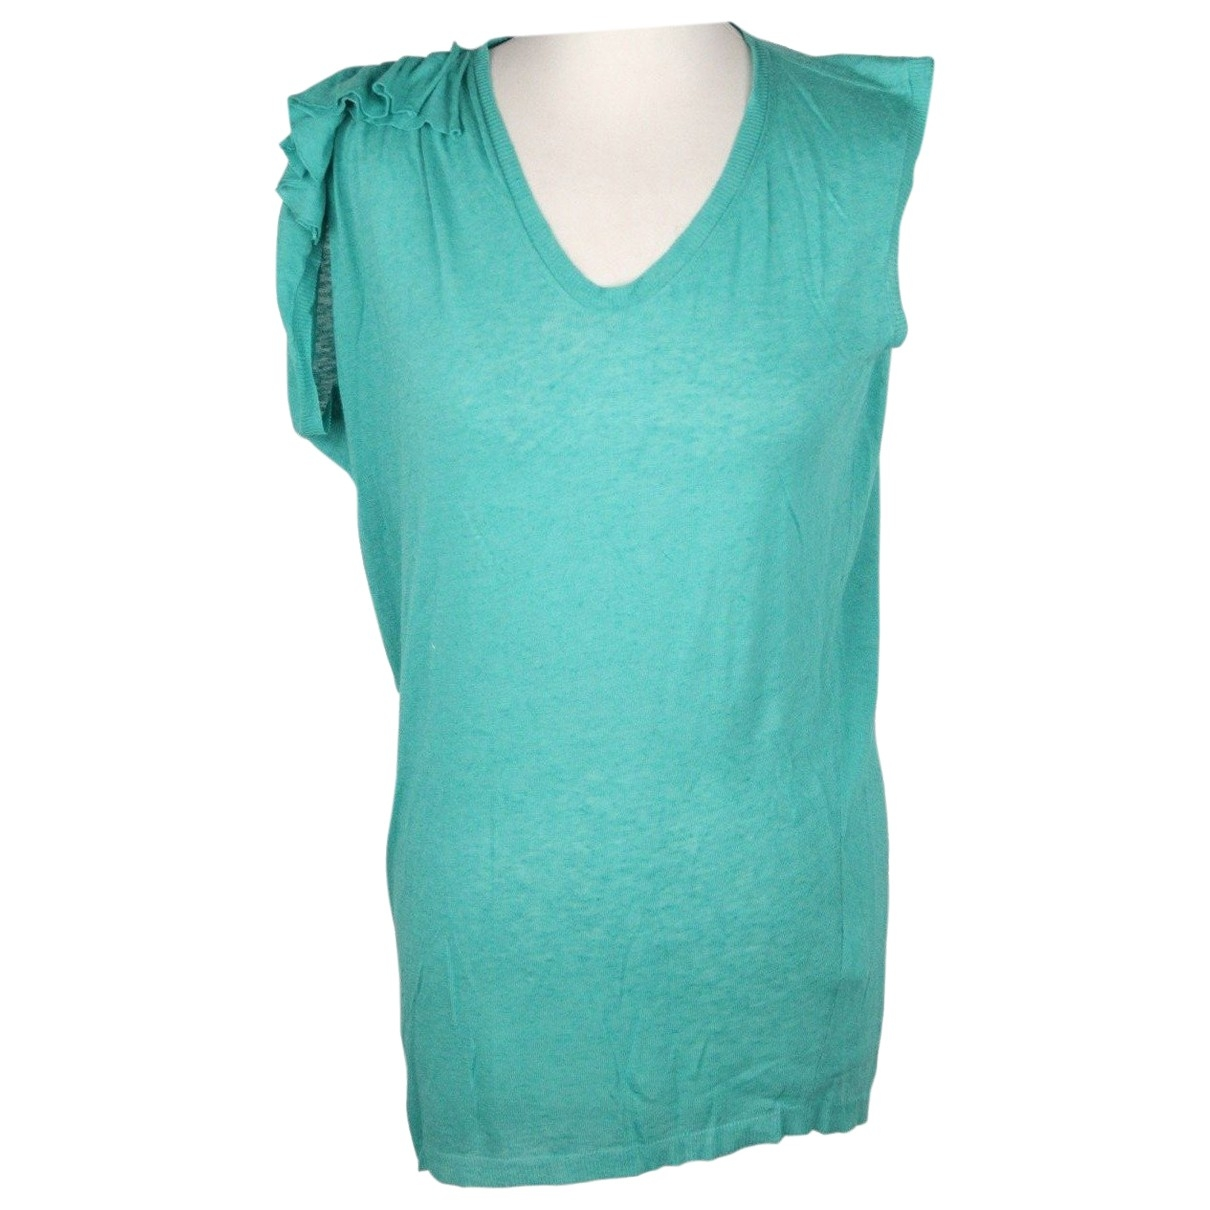 Lanvin \N Turquoise  top for Women XS International